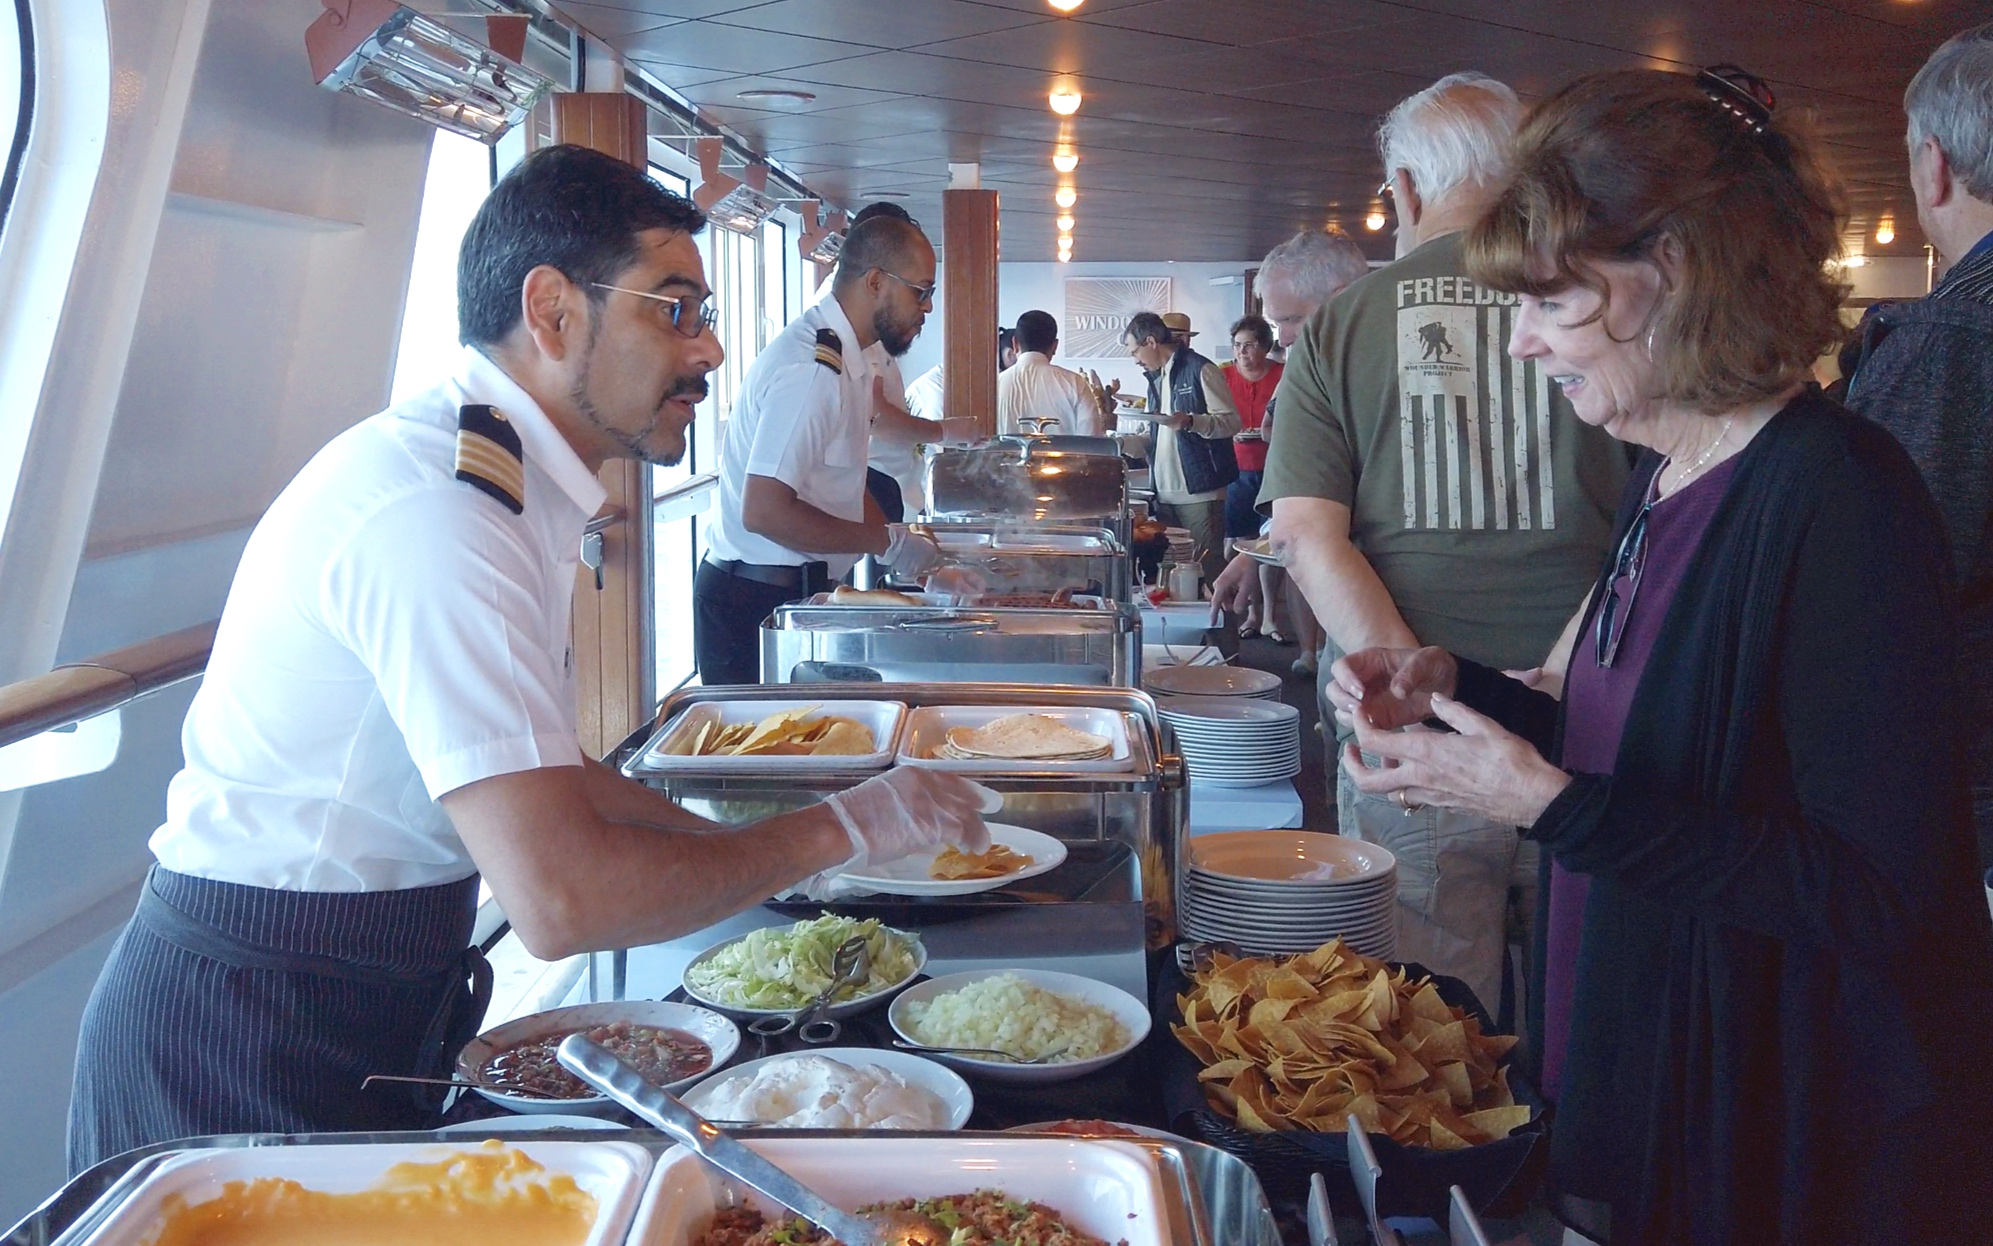 The Officers serving us our barbecue accompaniments.